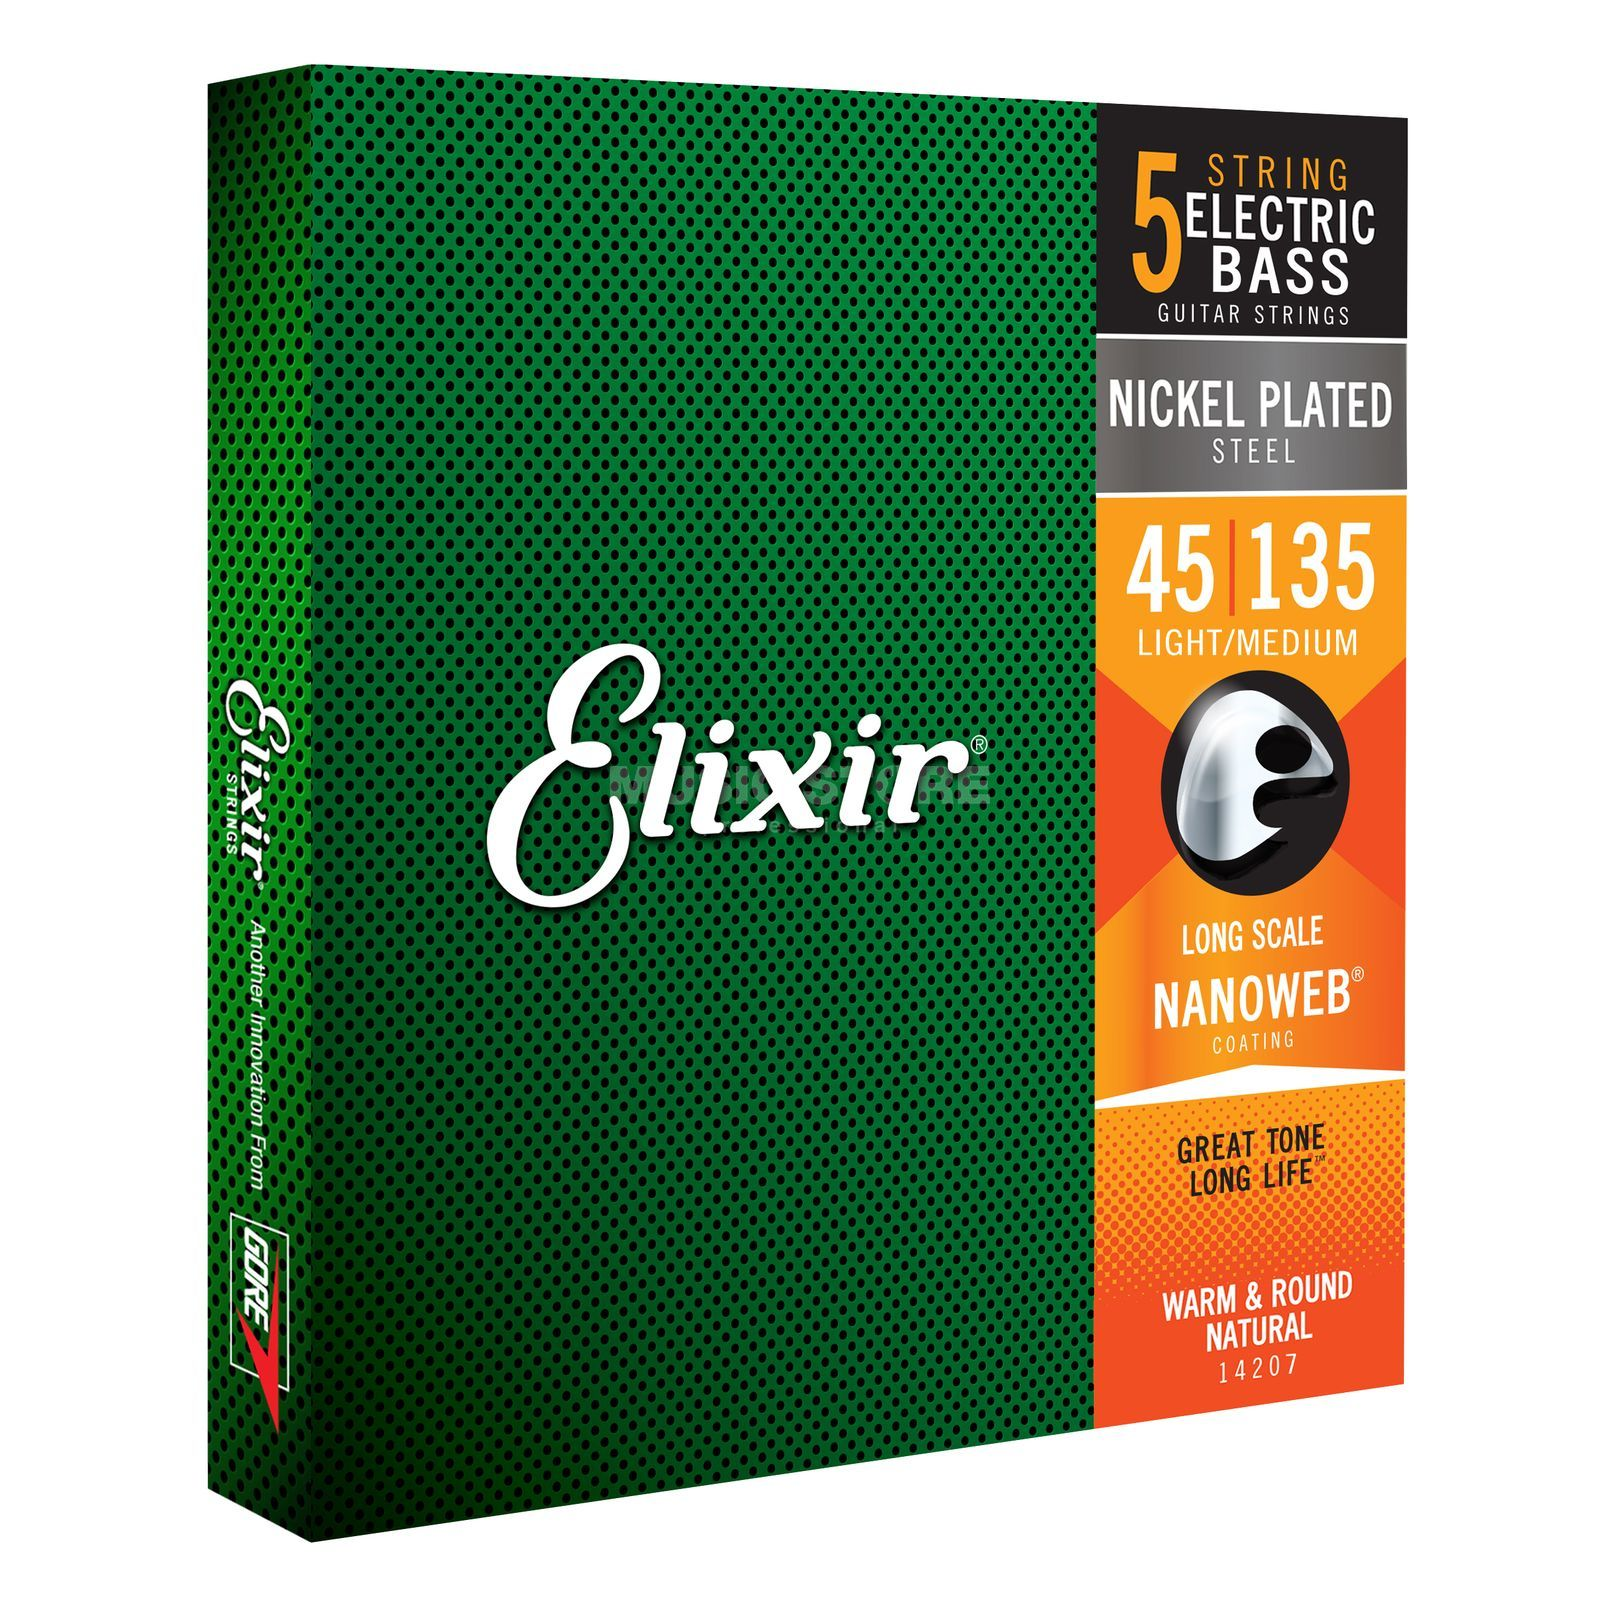 Elixir 5er Bass 45-135 NanoWeb 14207 Light/Medium Product Image